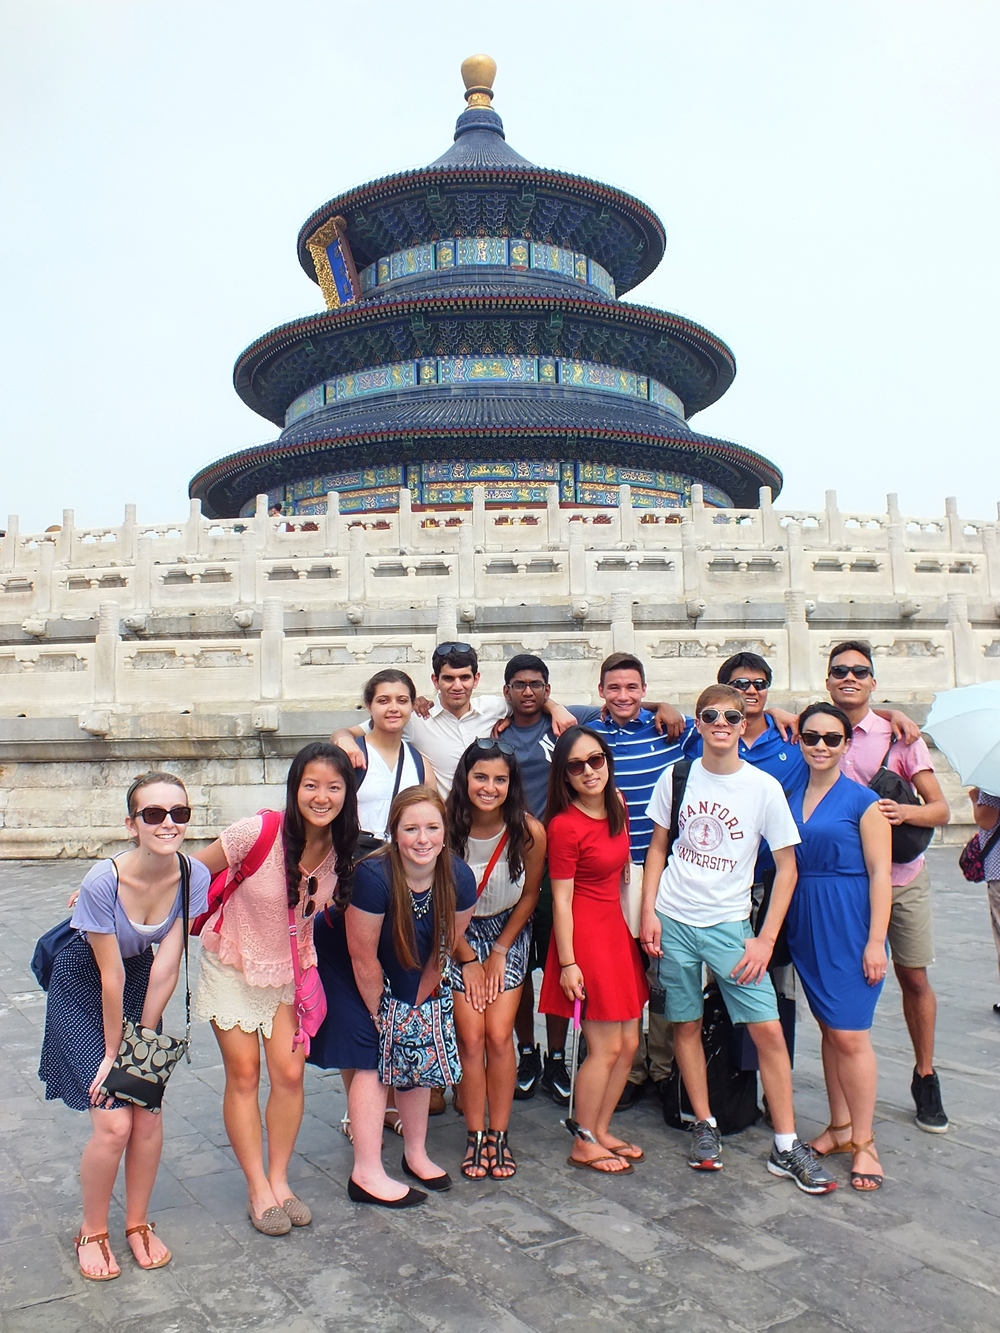 Beijing_Temple of Heaven_Group_mb.JPG